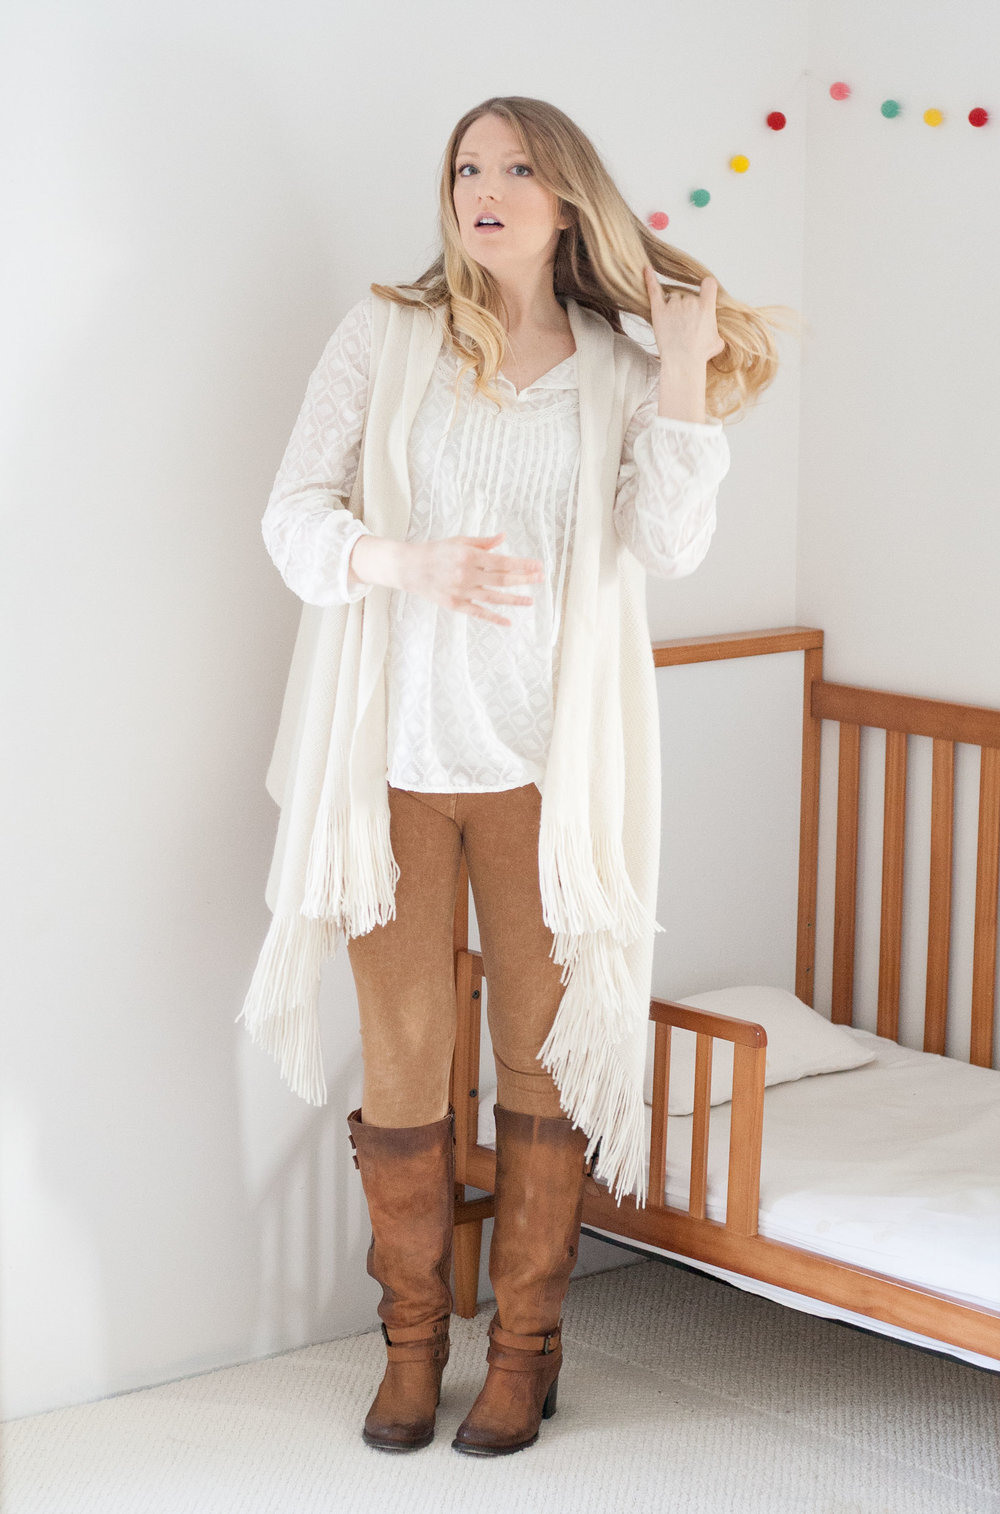 Pea in the Pod Maternity Blouse paired with my old,non-maternity white fringe sweater vest and tan suede-look leggings. Freebird Clive Boots .